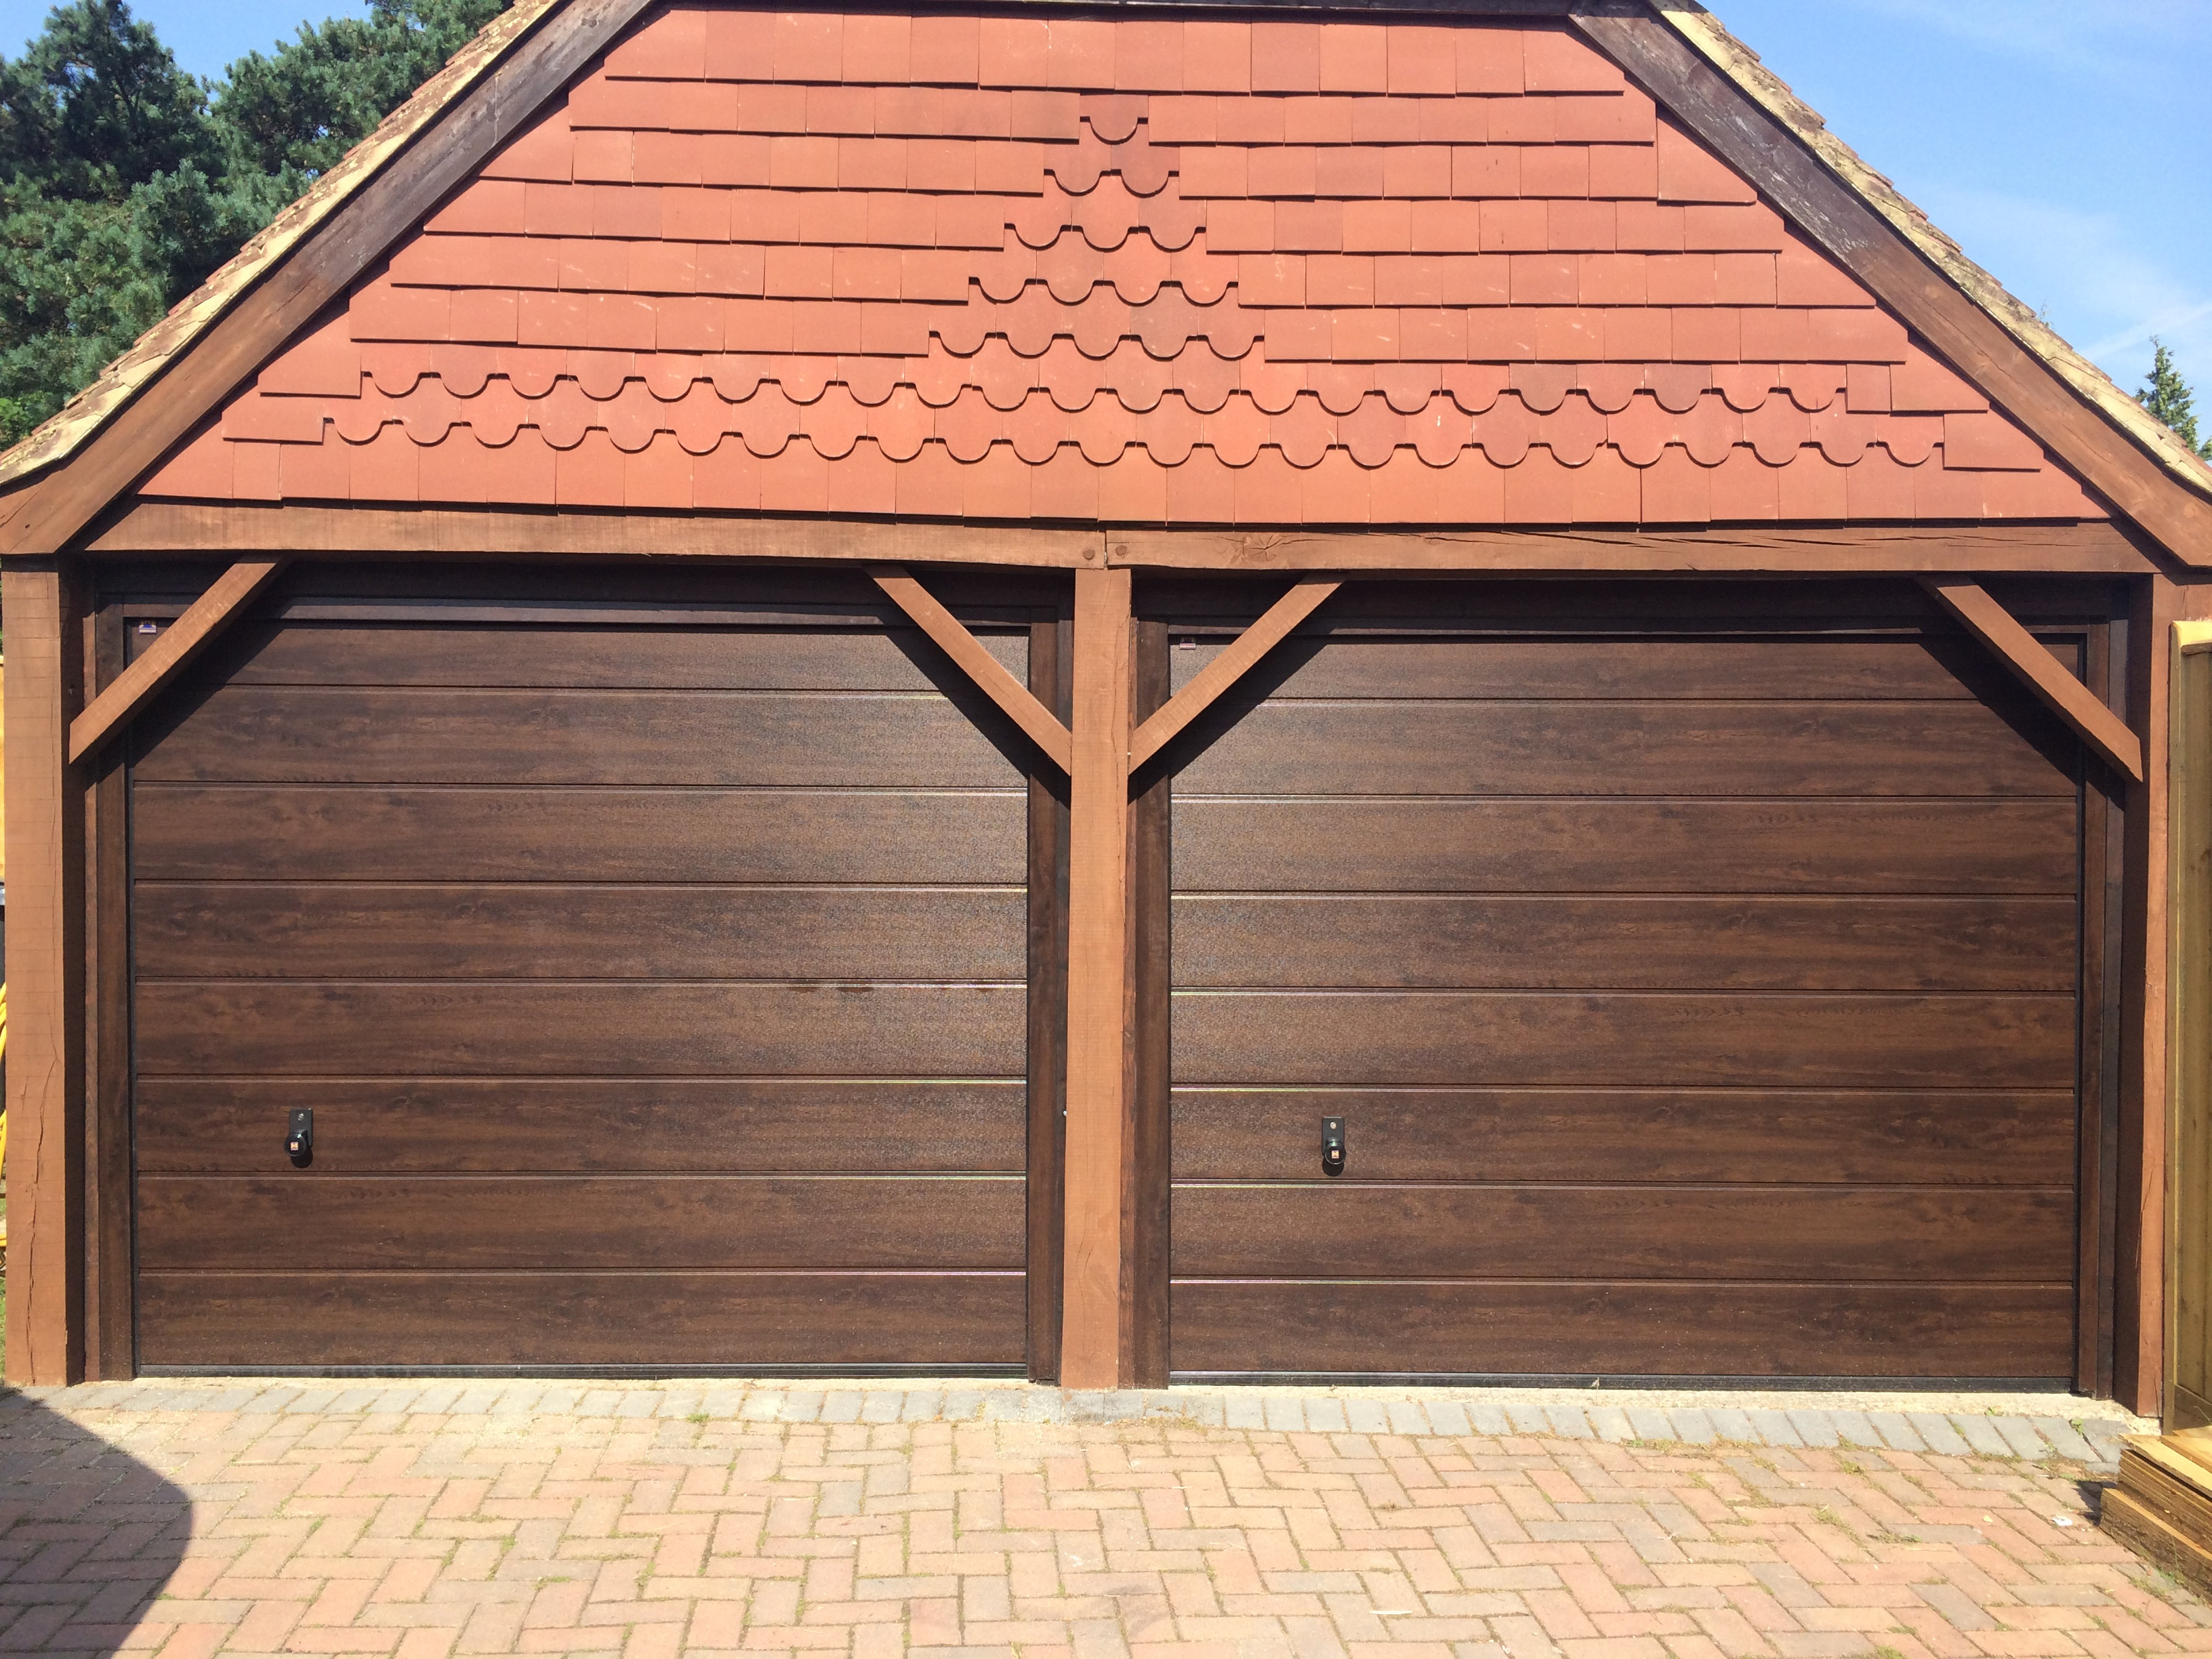 barn stay exterior inside doors a they to have look pin garage our great on said nobody